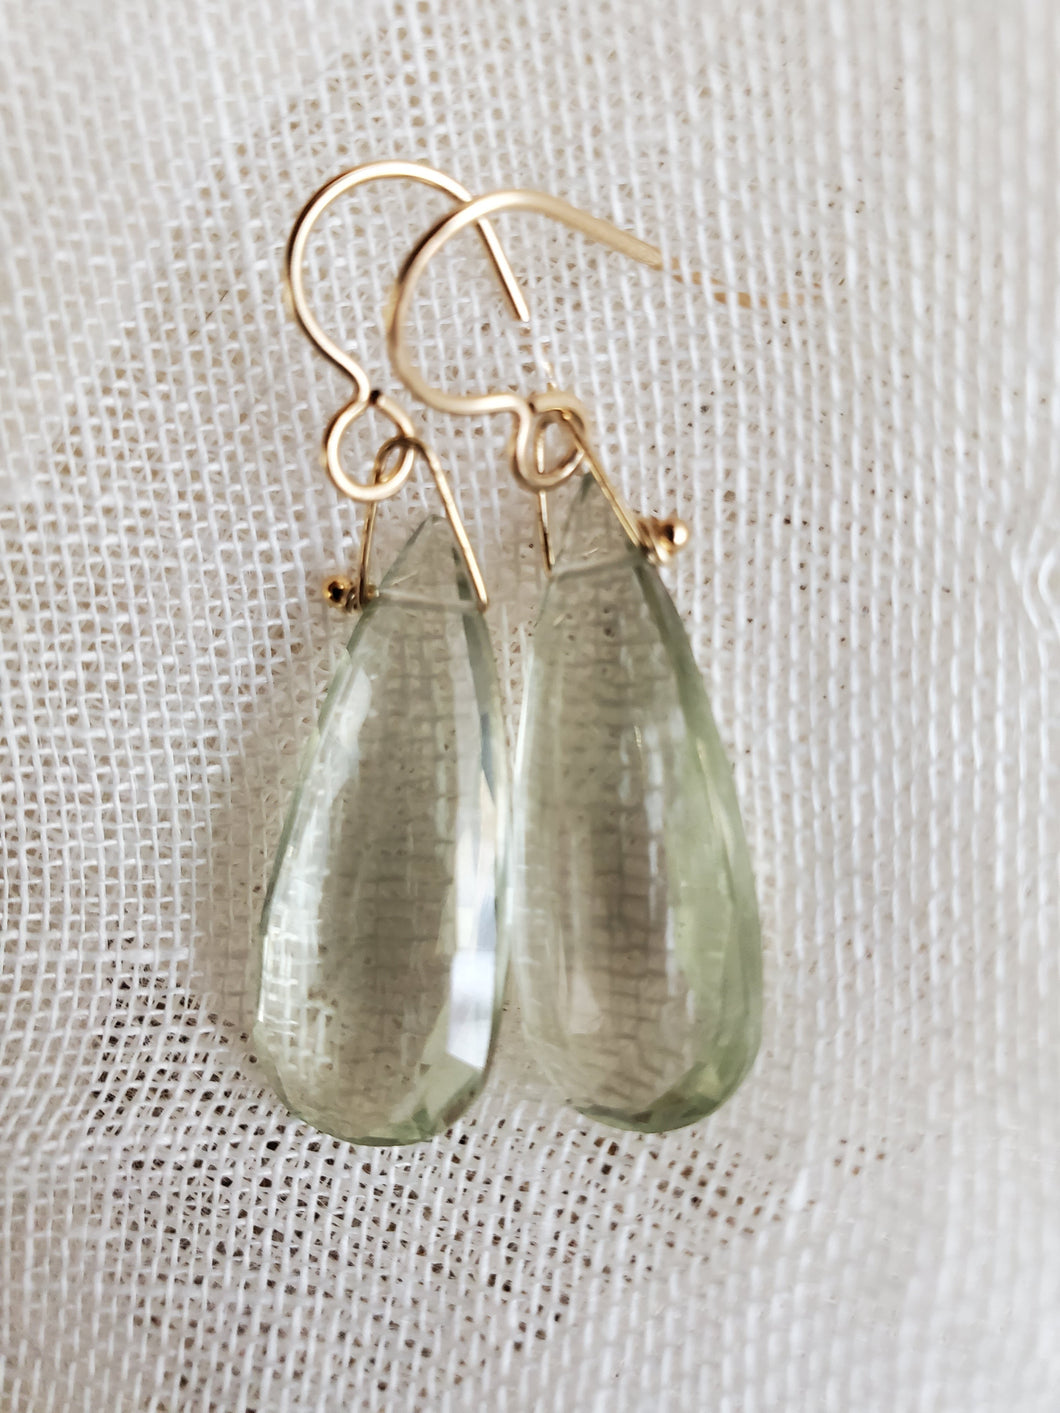 Simon & LuLu Green Amethyst Earrings